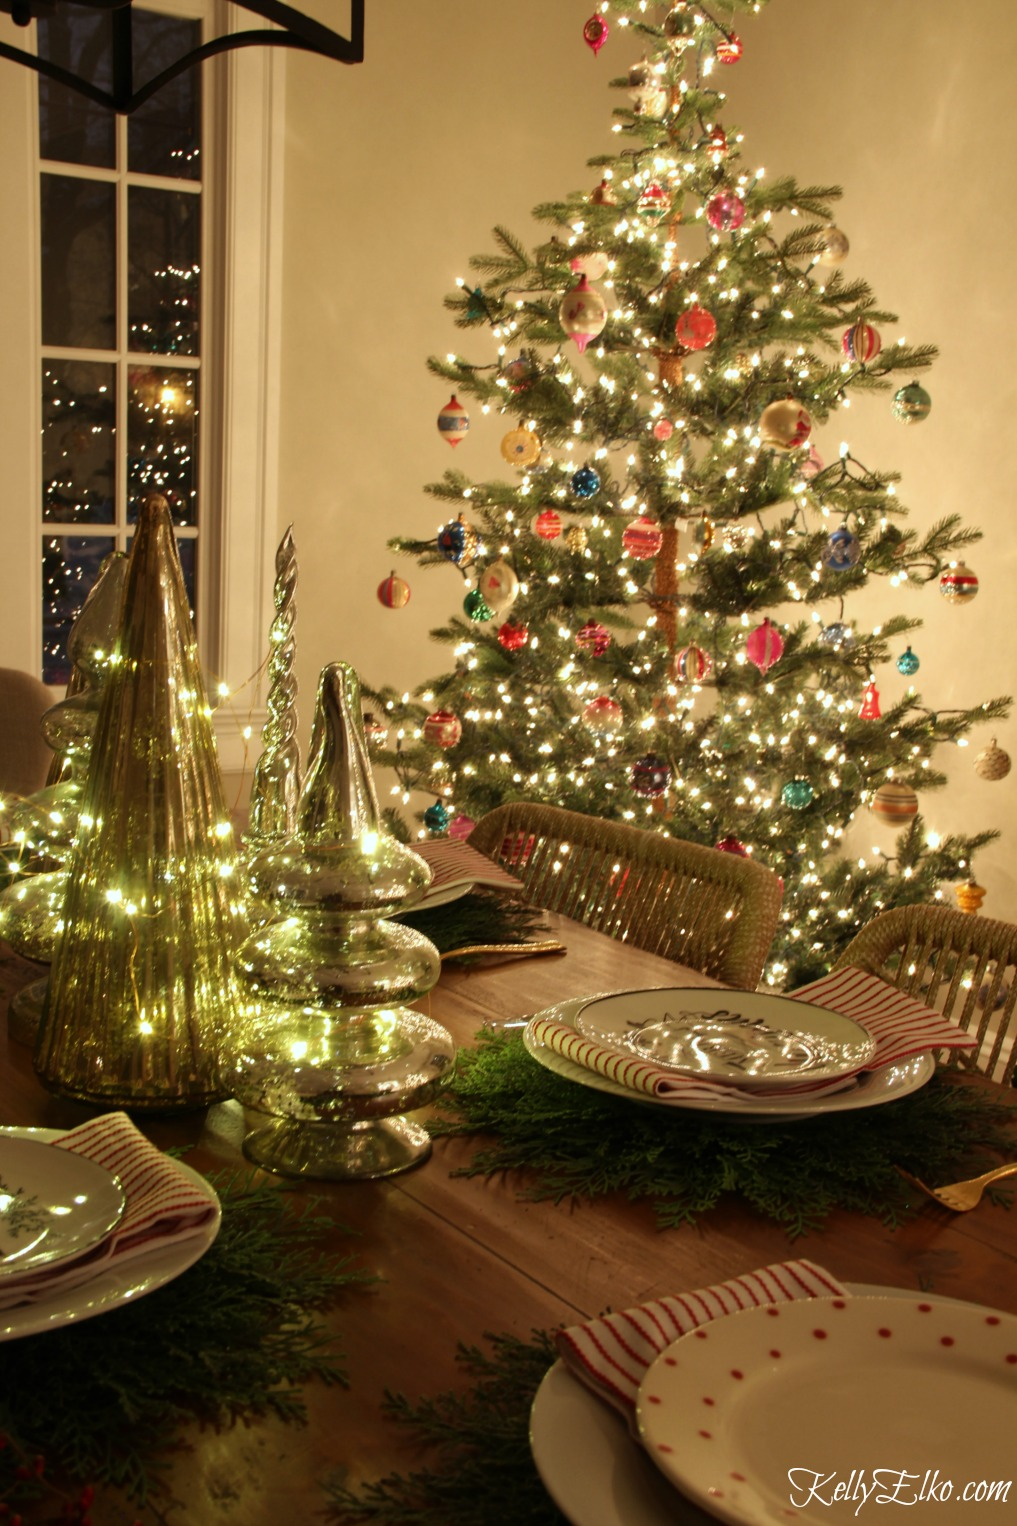 Christmas Nights Tour - see 25 of the best Christmas homes lit up at night! I love this dining room with sparkling tree and vintage ornaments kellyelko.com #christmas #christmasdecorating #christmasdecor #christmaslights